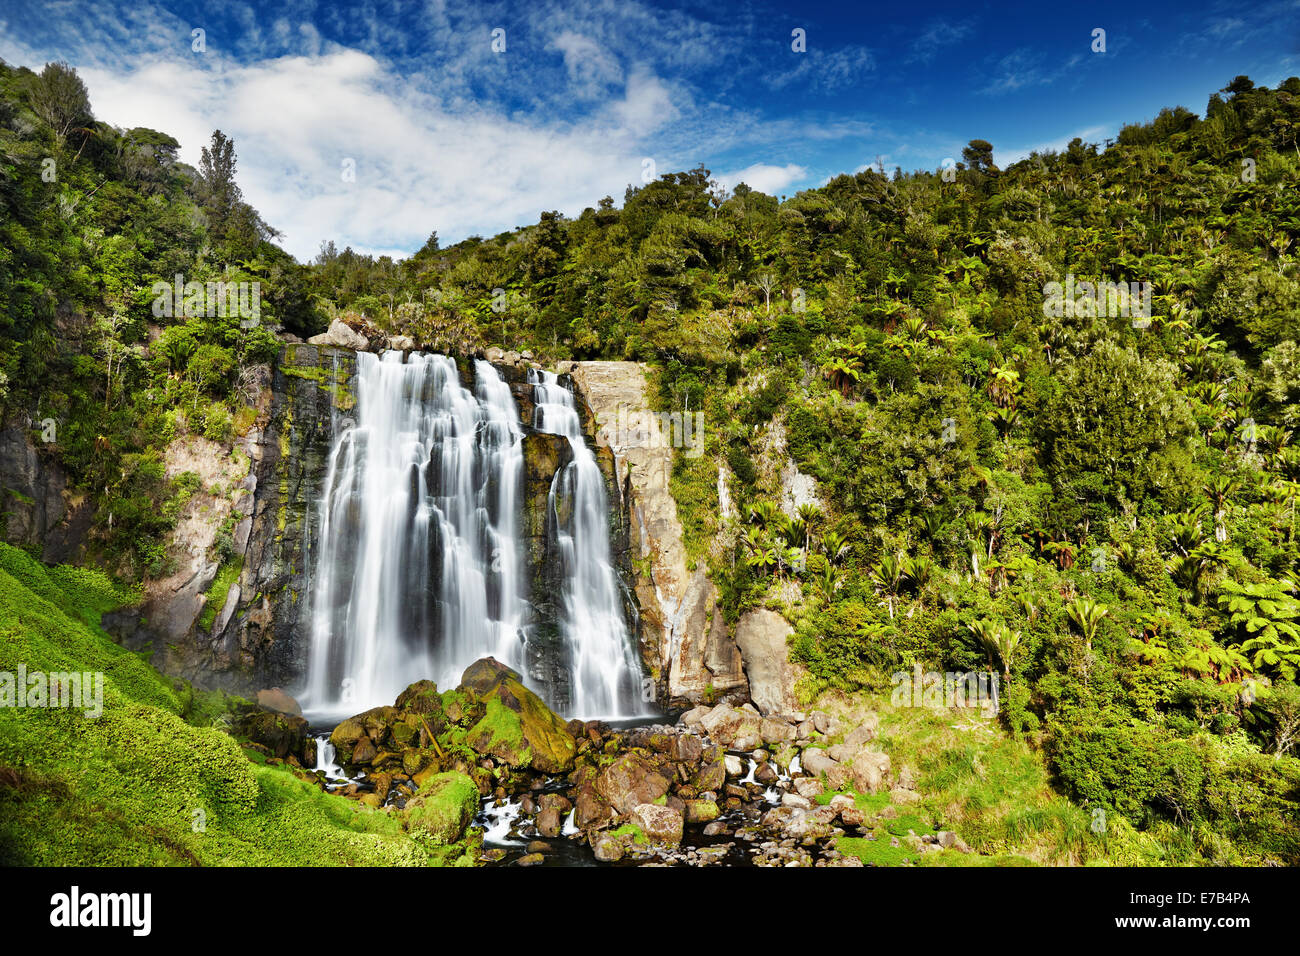 Marokopa Falls, North Island, New Zealand Photo Stock